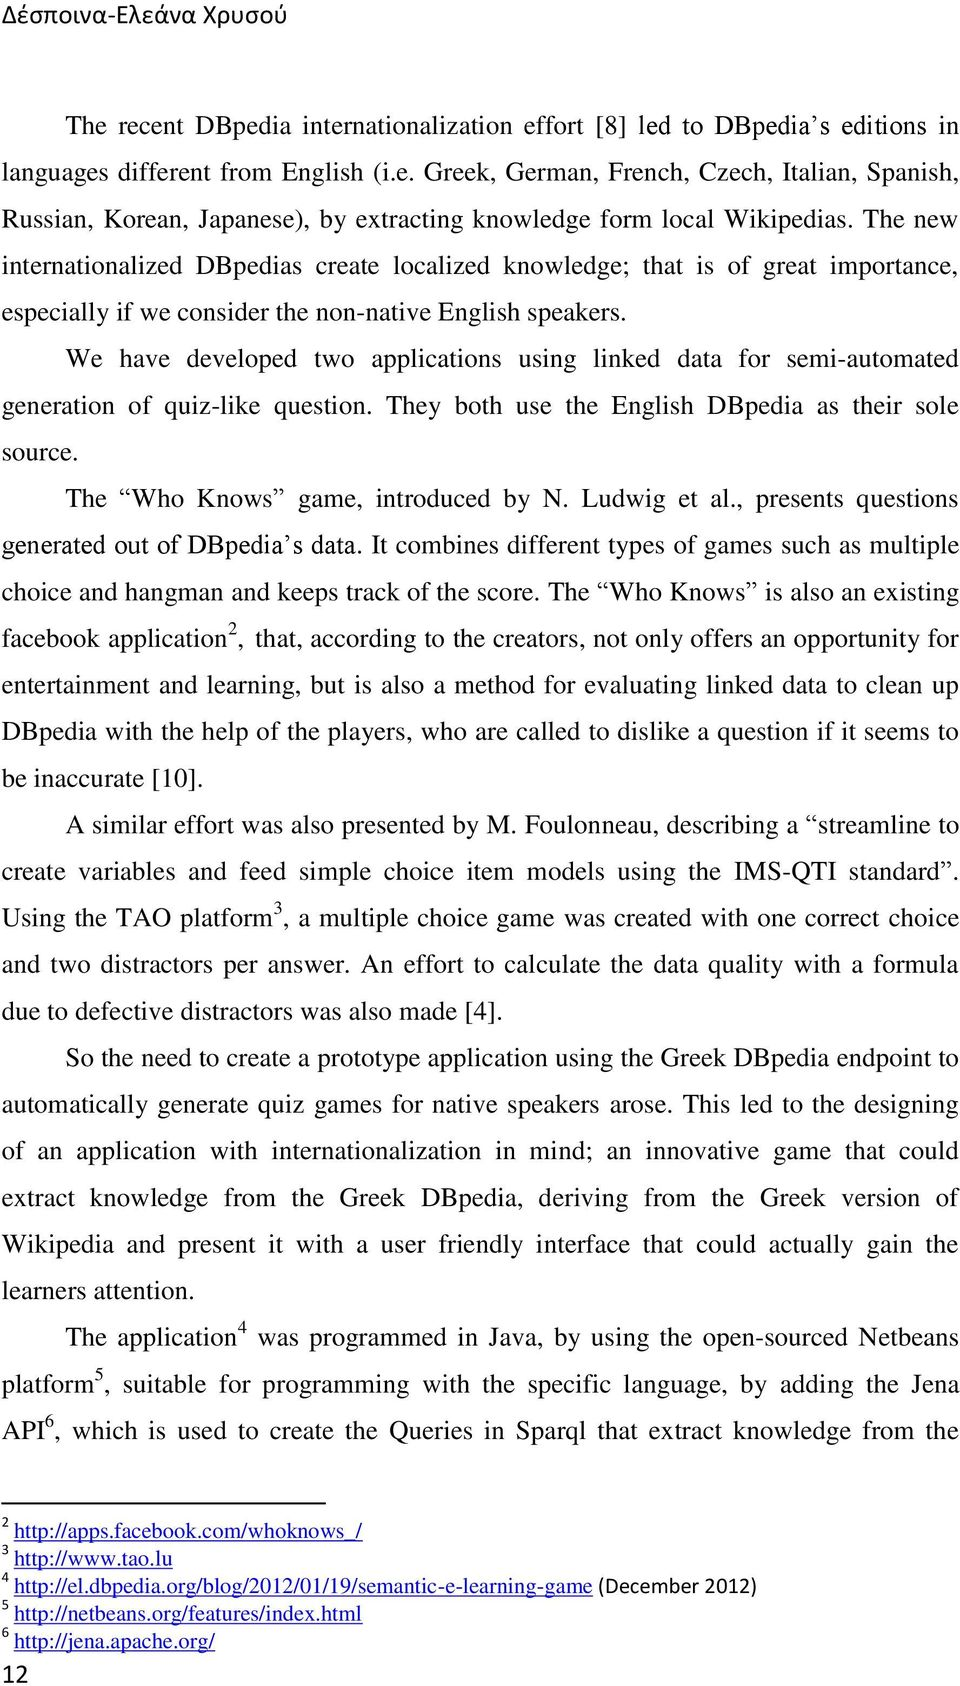 We have developed two applications using linked data for semi-automated generation of quiz-like question. They both use the English DBpedia as their sole source. The Who Knows game, introduced by N.